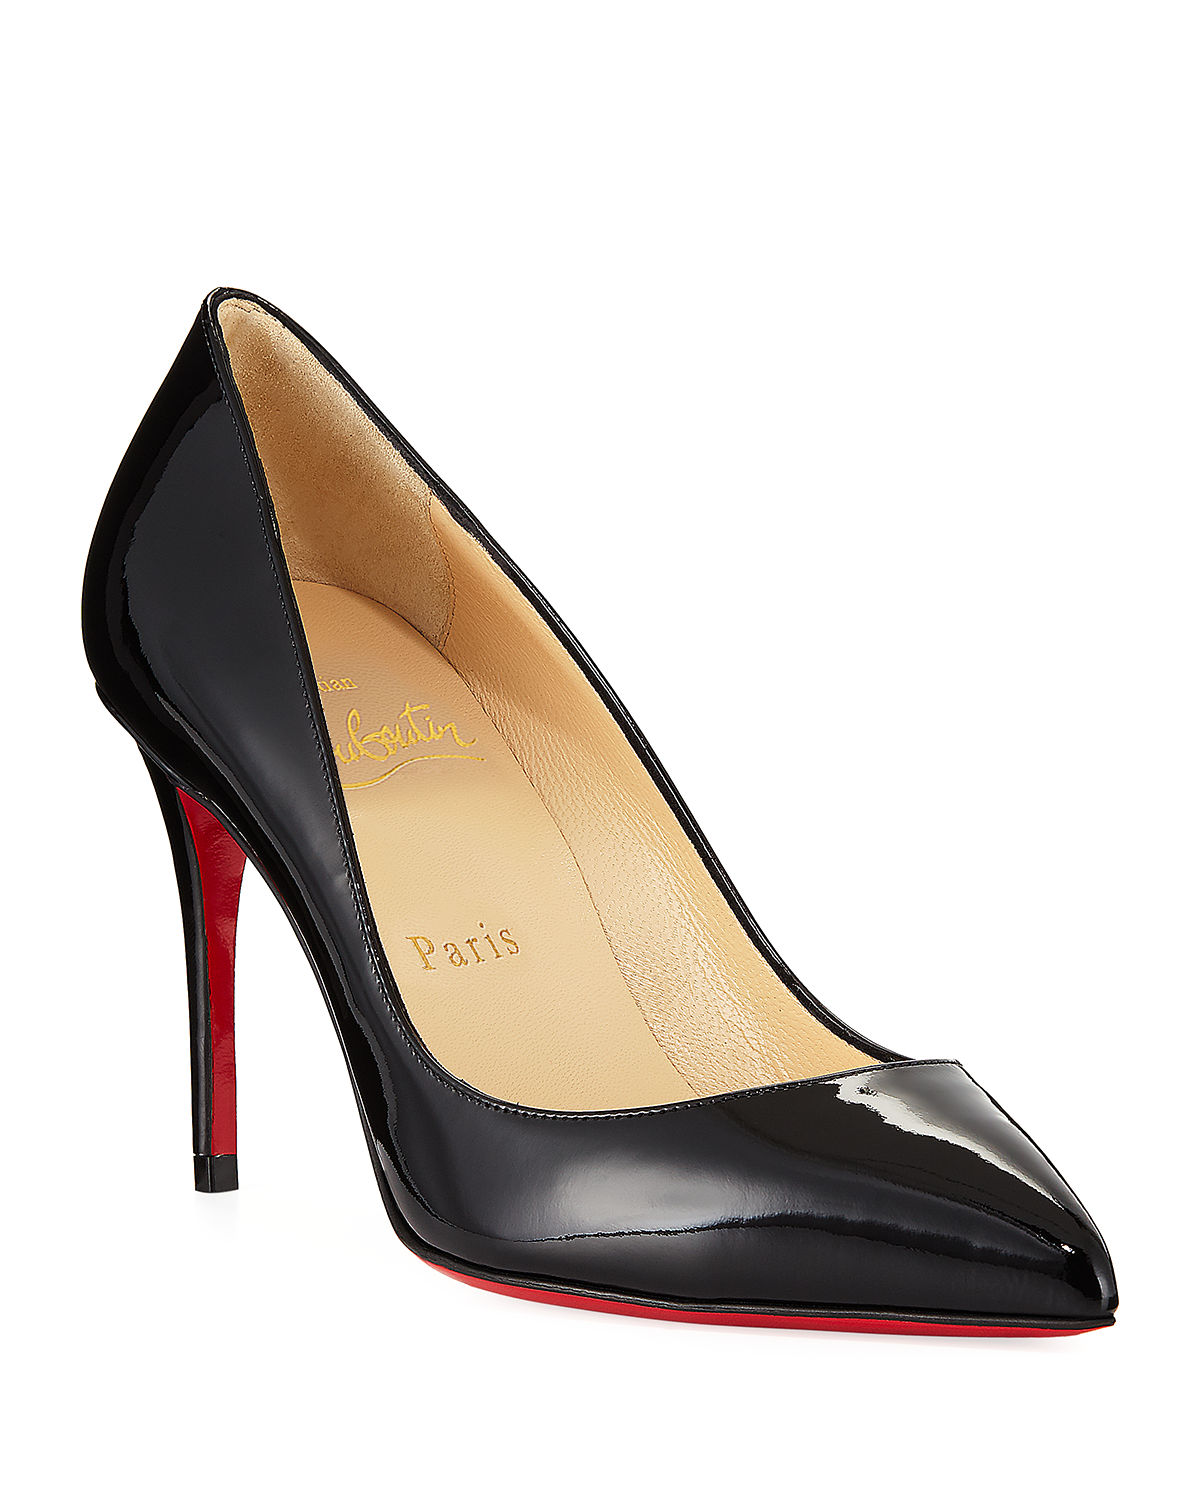 huge discount cc872 c22fc Pigalle Follies 85mm Patent Red Sole Pump